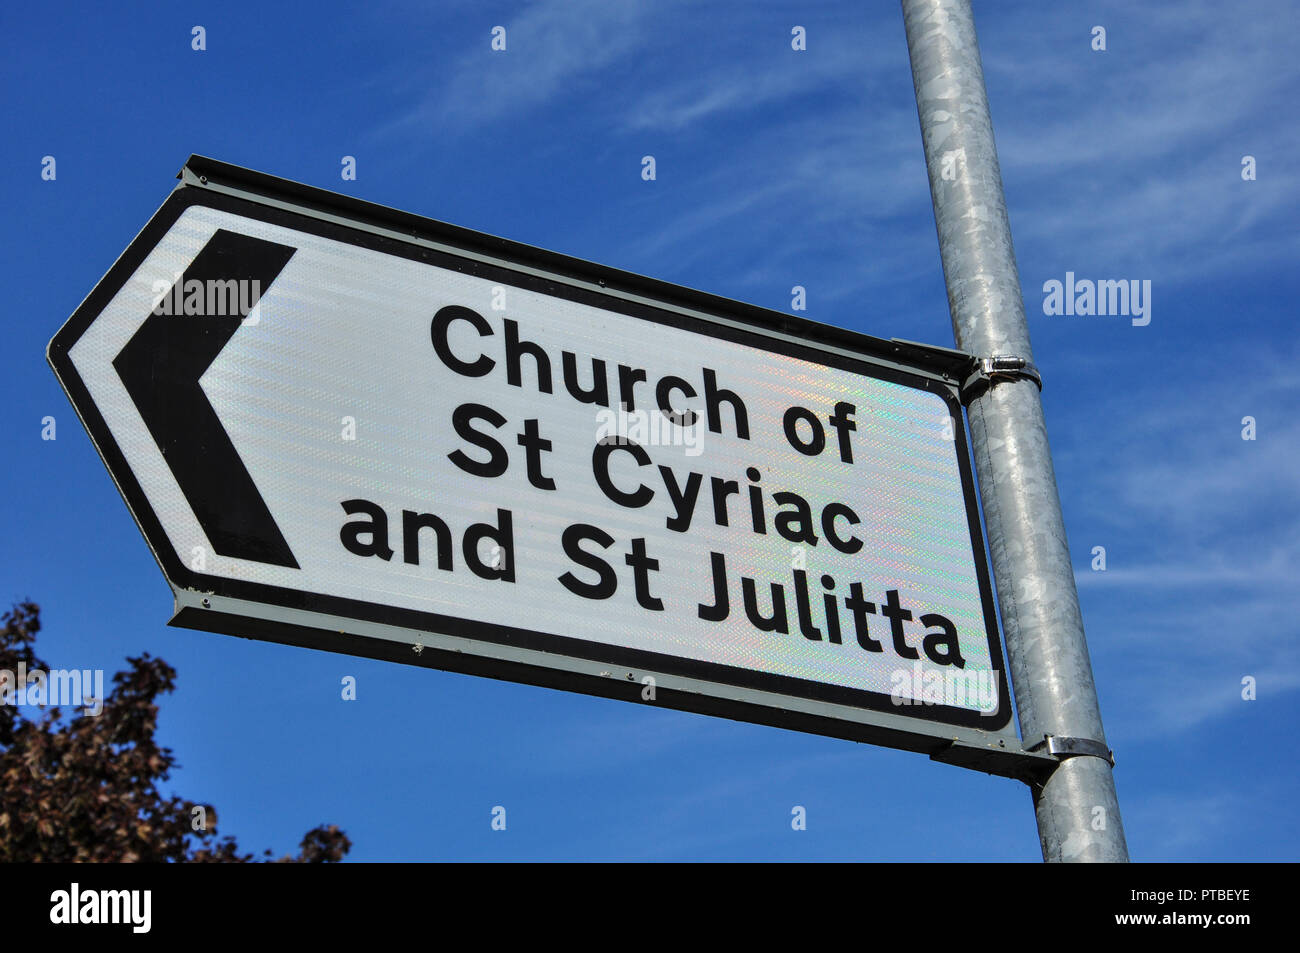 Signpost for the redundant church of St Cyriac and St Julitta, Swaffham Prior, Cambridgeshire, England, UK - Stock Image